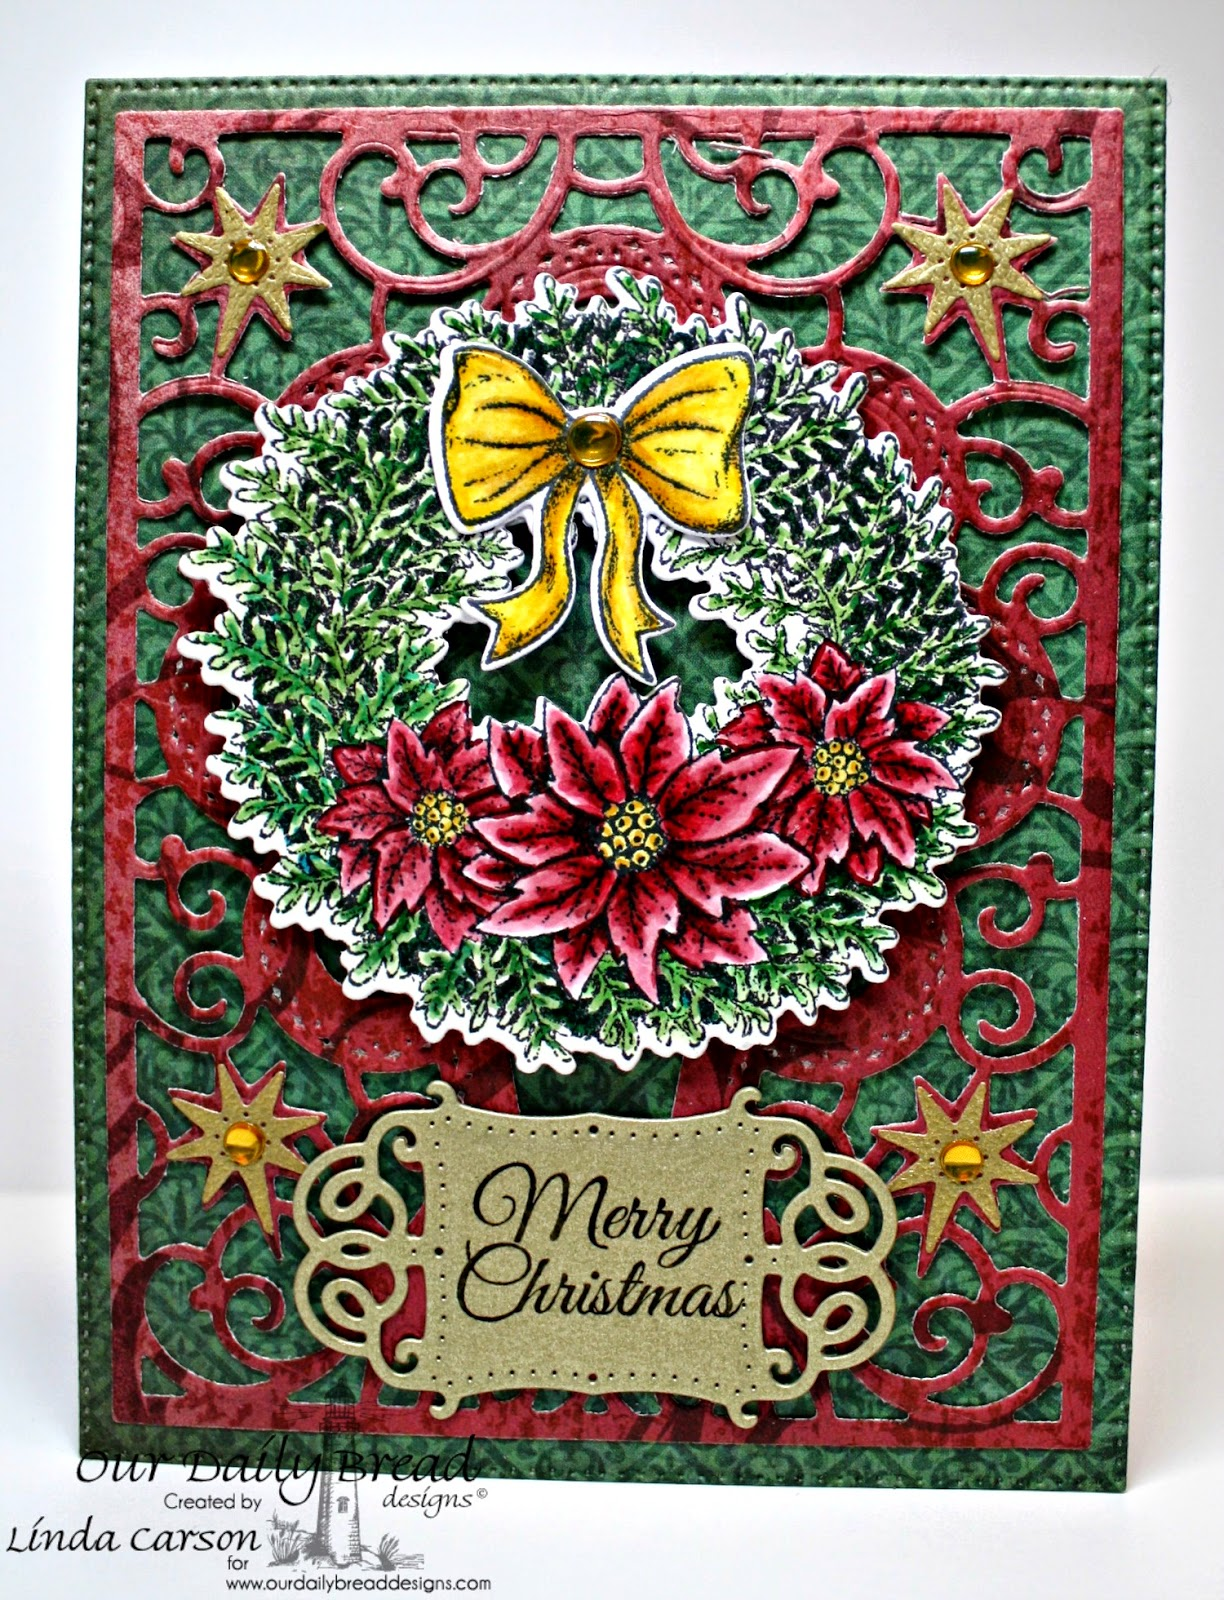 ODBD, Splendorous Stars die, Vintage Flourish Pattern die,  Poinsettia Wreath die, Flourished Star Pattern die, Poinsettia Wreath, Christmas Collection Paper 2013, designer Linda Carson